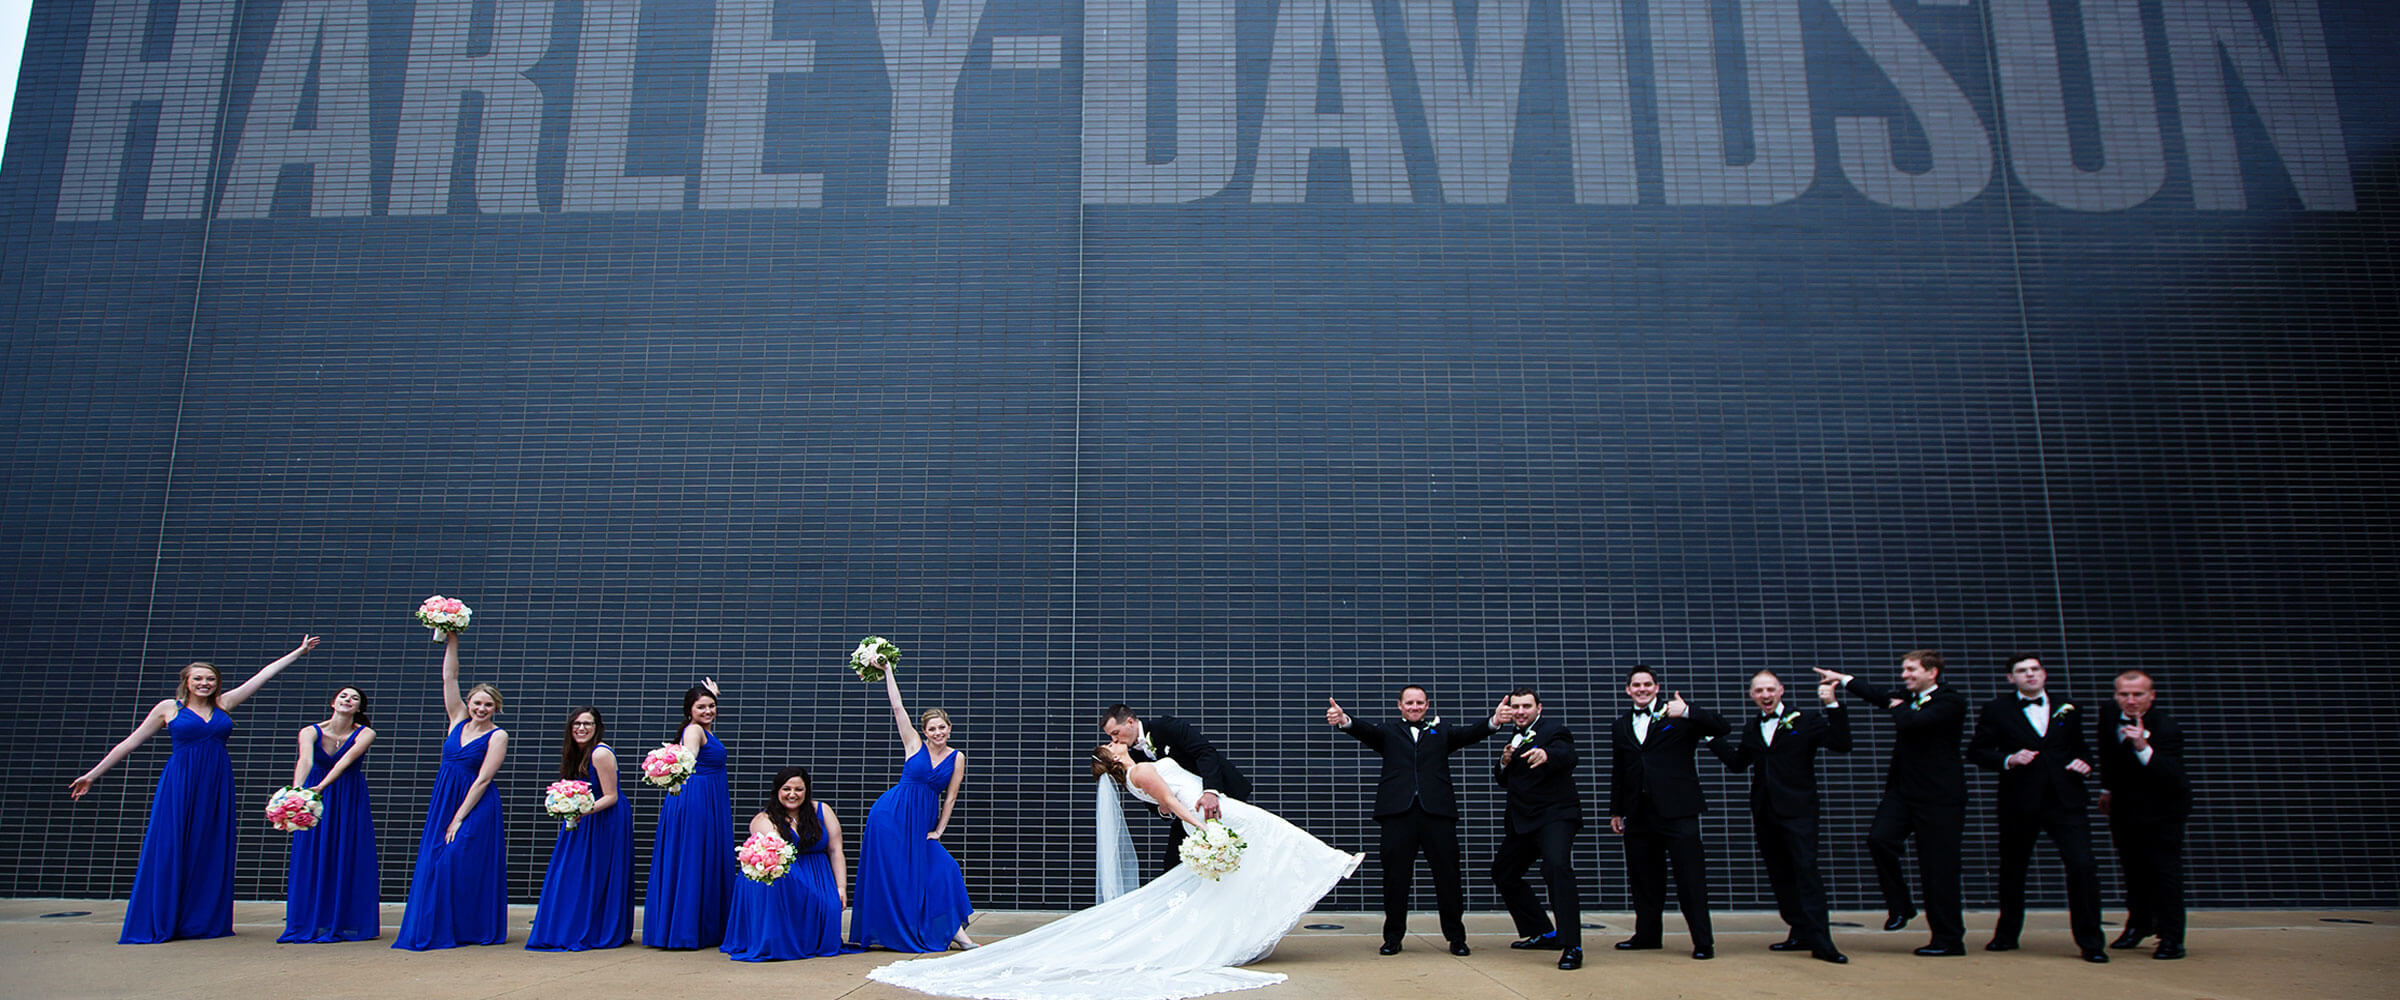 Weddings at 1903 Events, at the Harley Davidson Museum